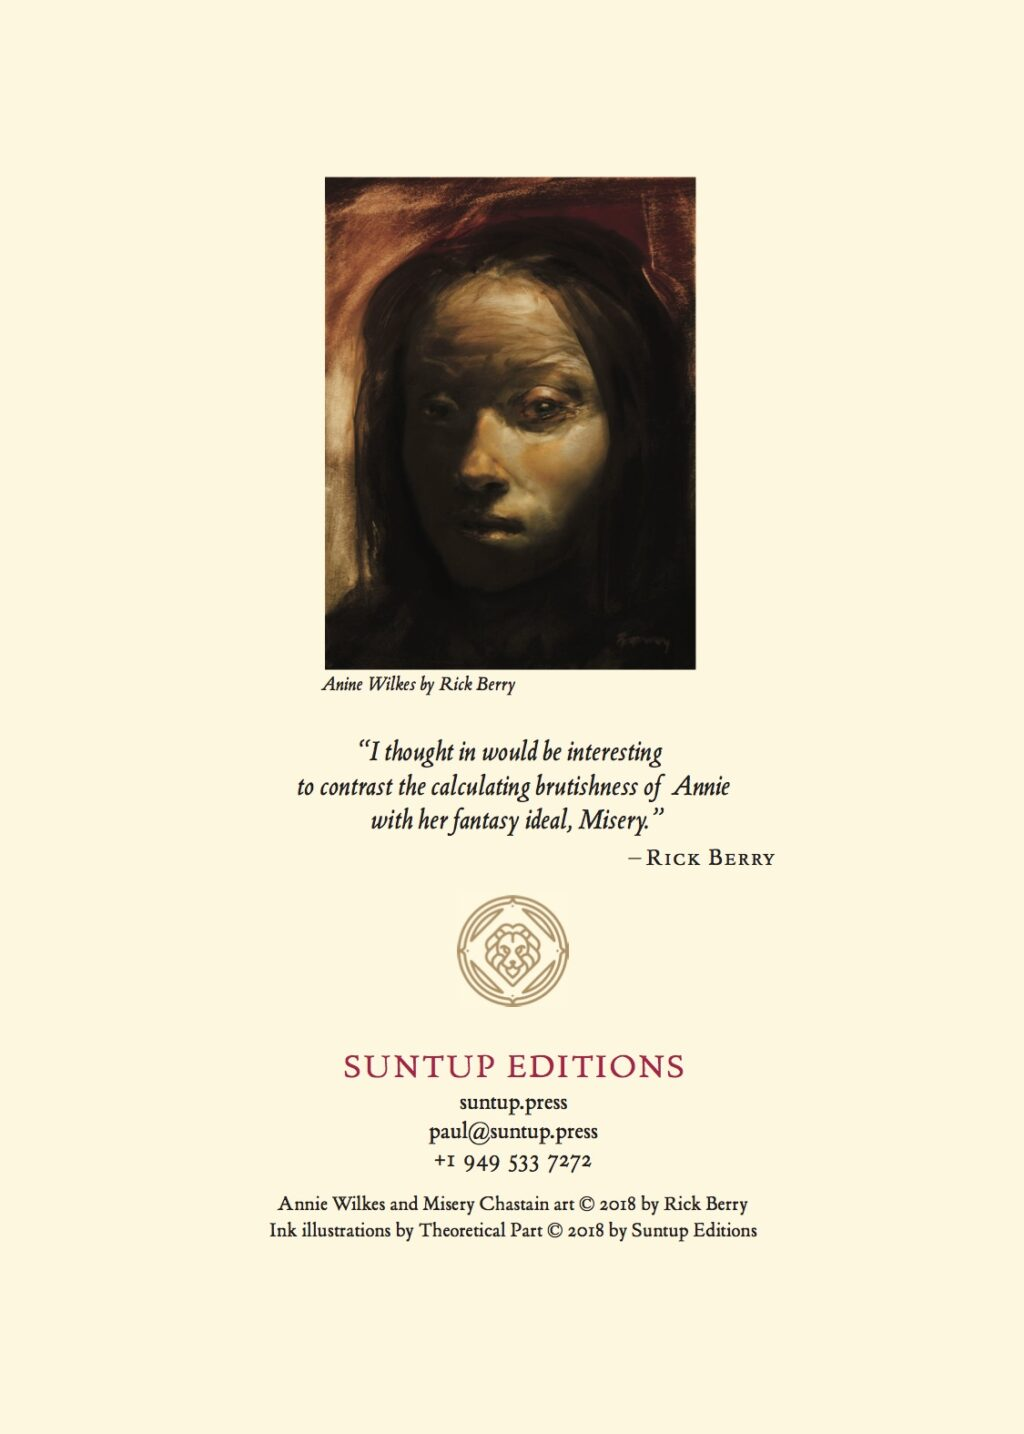 Suntup Misery Prospectus6 1024x1434 - Gorgeous Highly Limited Edition Signed Copies of Stephen King's Misery Coming This Summer